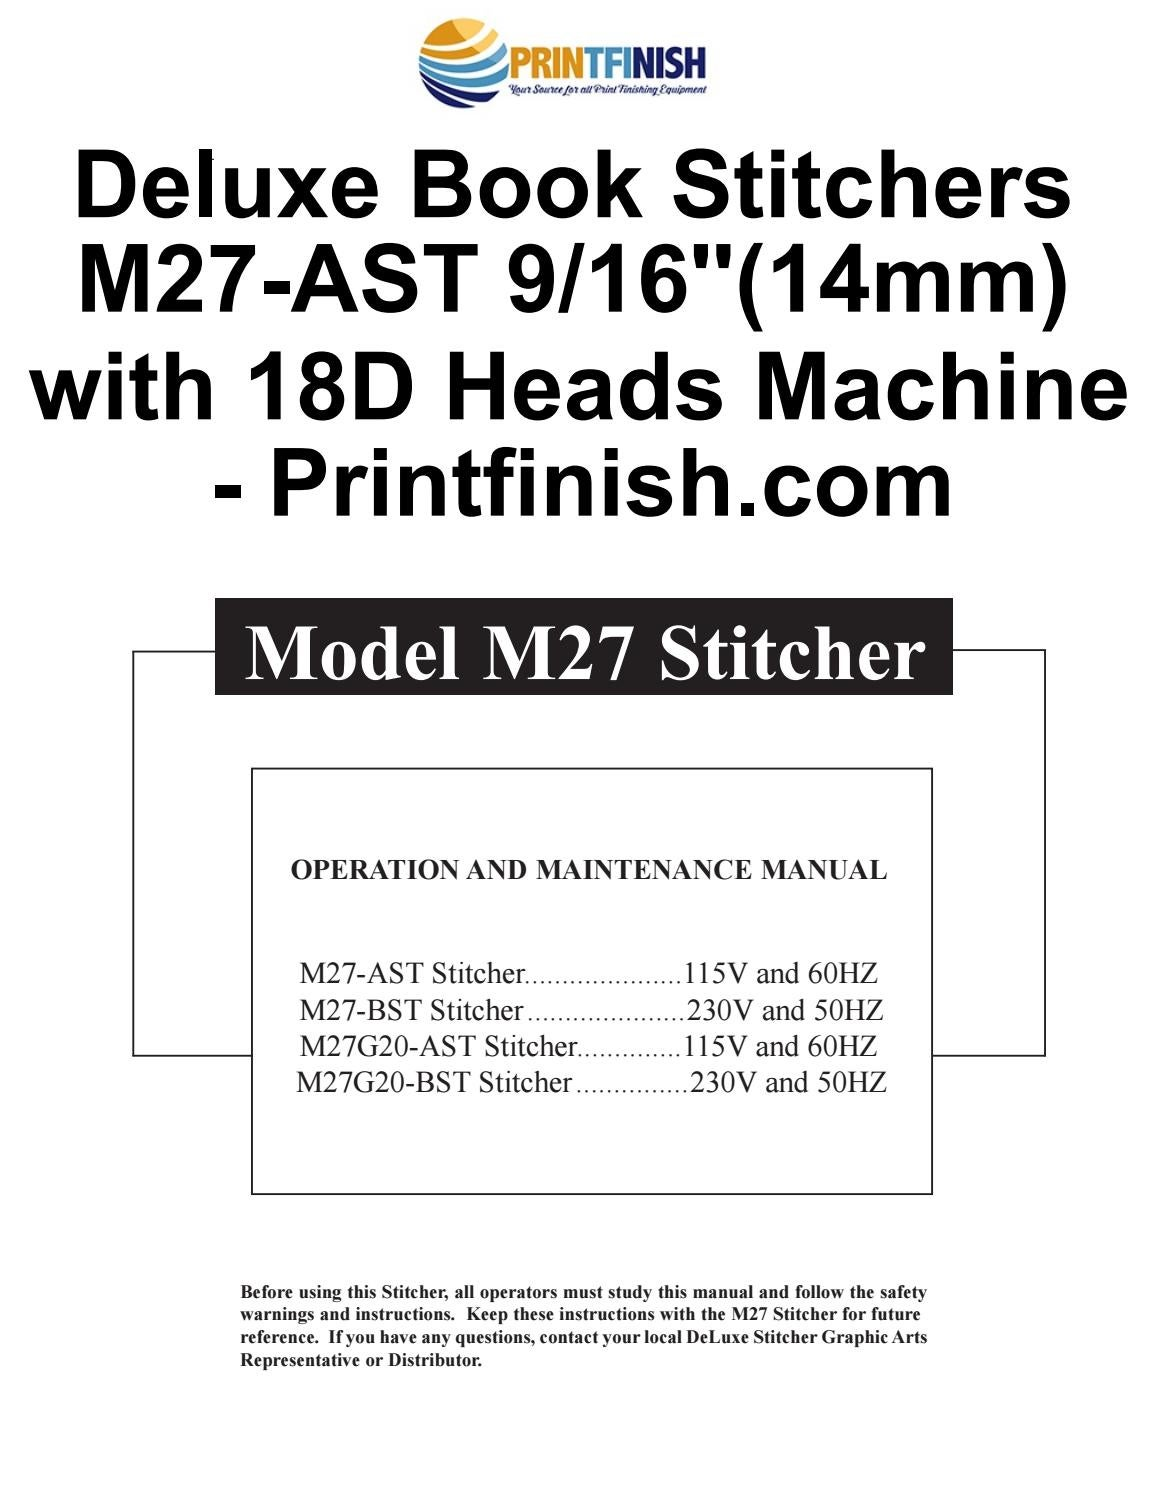 DeLuxe Book Stitchers M27-AST 9/16″ (14mm) with 18D Heads Machines -  Printfinish.com by Print Finish - issuu